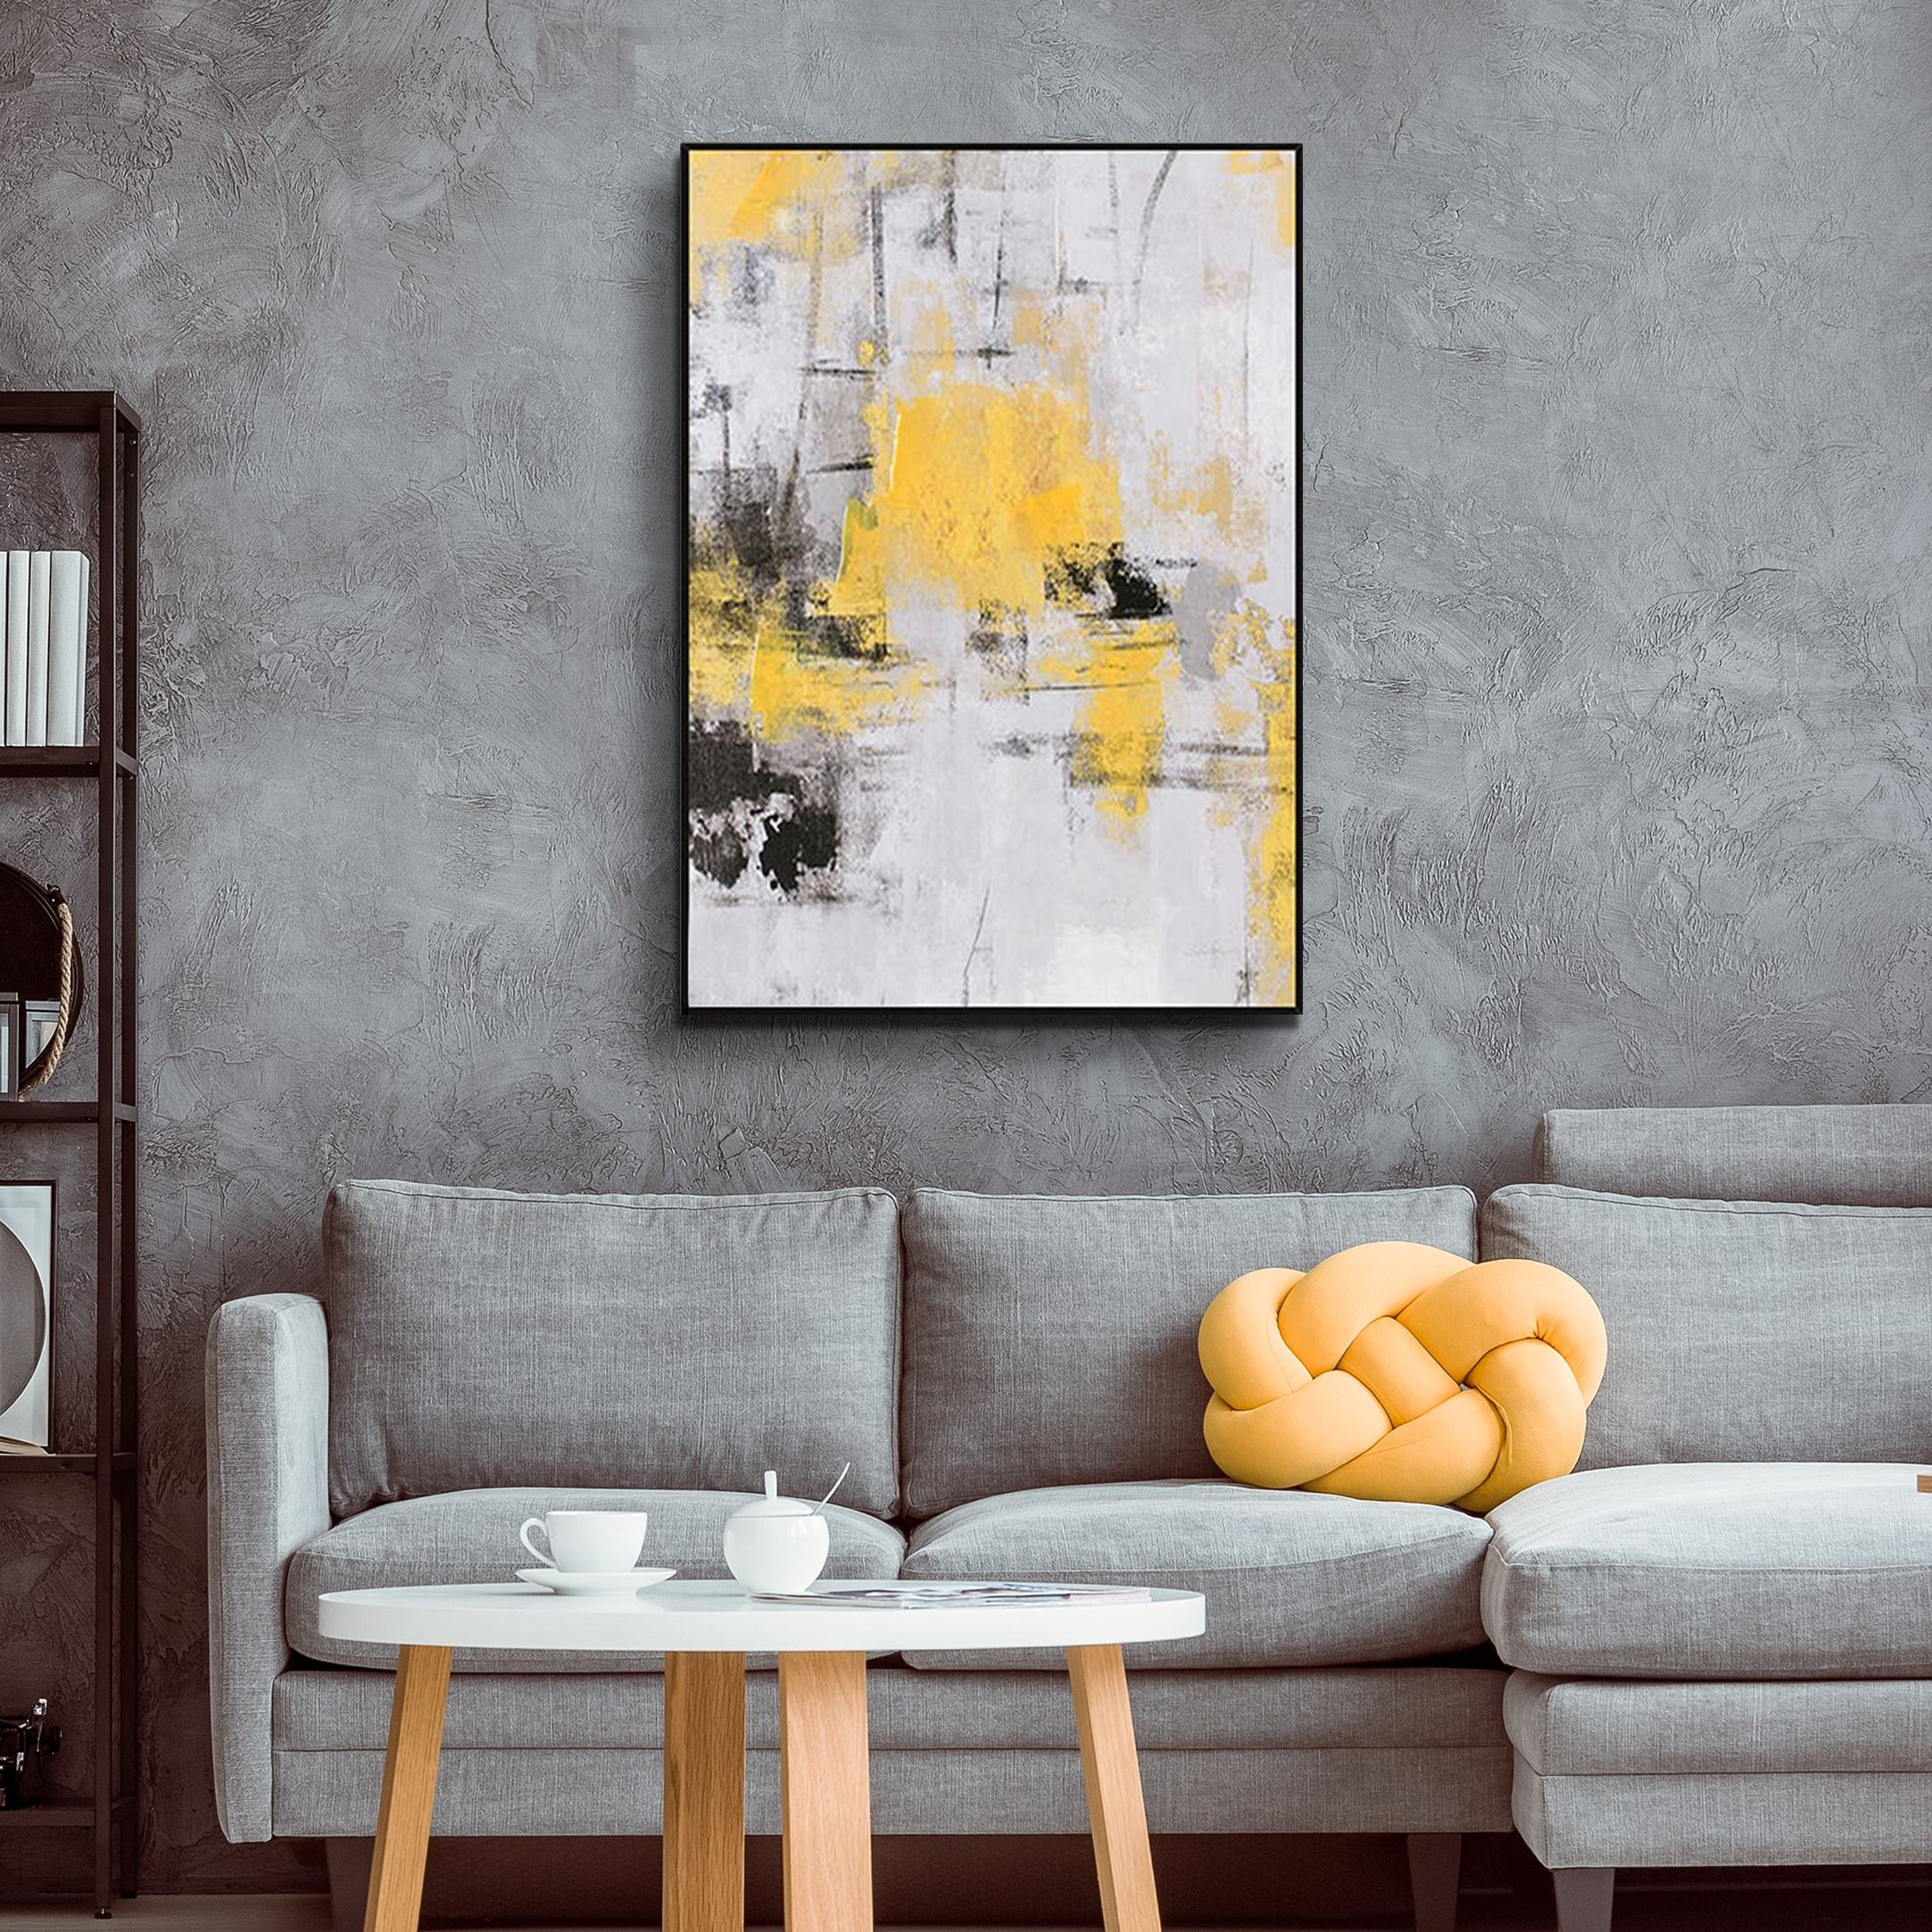 Abstract Modern Home Decor 100% Handpainted Yellow Single Panel Oil painting canvas for Living room